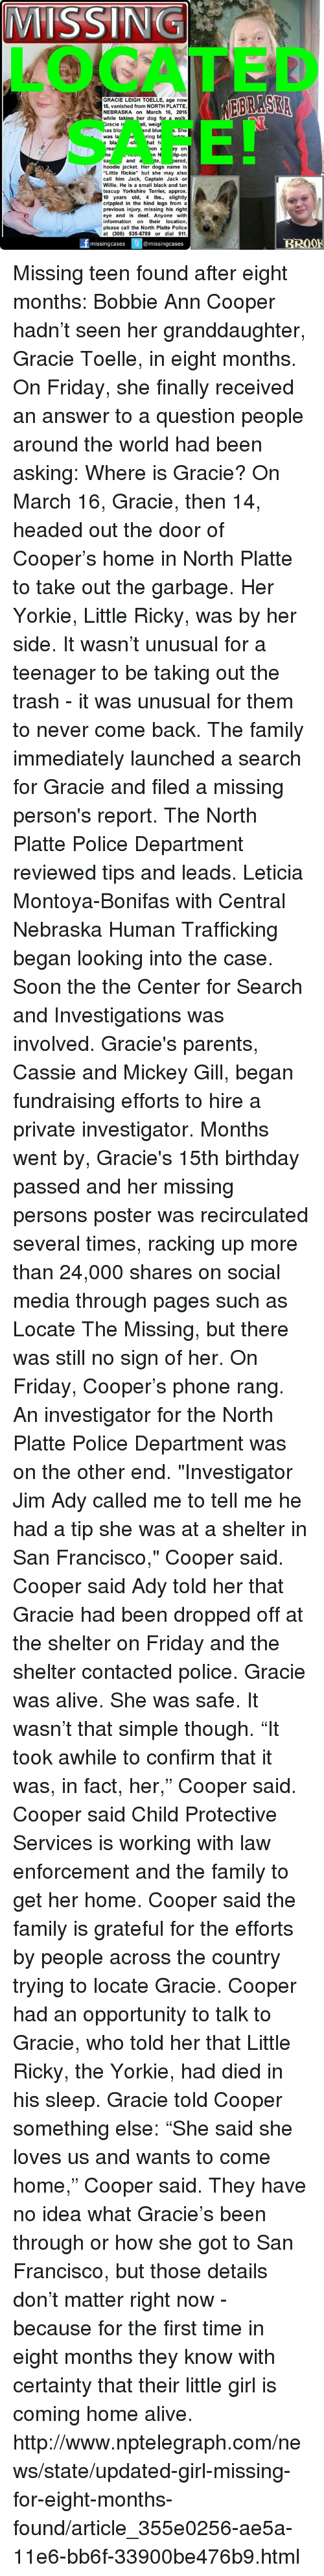 "Missing Person: MISSIIN  GRACIE LEIGH TOELLE, age now  15, vanished from NORTH PLATTE,  NEBRASKA on March 16, 2016  while takina r dog for a walk  II, weigh  racie i  as blo  nd blu  She  ring b  was la  bla  at h  On  y on  n N p-on  and  ered,  Sa  hoodie jacket. Her dogs name is  ""Little Rickie"" but she may also  call him Jack, Captain Jack or  Willie. He is a small black and tan  teacup Yorkshire Terrier, approx  10 years old, 4 lbs., slightly  crippled in the hind legs from a  previous injury, missing his right  eye and is deaf. Anyone with  information on their location,  please call the North Platte Police  at (308) 535-6789 or dial 911  missing cases  @missing cases Missing teen found after eight months: Bobbie Ann Cooper hadn't seen her granddaughter, Gracie Toelle, in eight months. On Friday, she finally received an answer to a question people around the world had been asking: Where is Gracie?  On March 16, Gracie, then 14, headed out the door of Cooper's home in North Platte to take out the garbage. Her Yorkie, Little Ricky, was by her side.  It wasn't unusual for a teenager to be taking out the trash - it was unusual for them to never come back.  The family immediately launched a search for Gracie and filed a missing person's report.  The North Platte Police Department reviewed tips and leads. Leticia Montoya-Bonifas with Central Nebraska Human Trafficking began looking into the case. Soon the the Center for Search and Investigations was involved.  Gracie's parents, Cassie and Mickey Gill, began fundraising efforts to hire a private investigator.  Months went by, Gracie's 15th birthday passed and her missing persons poster was recirculated several times, racking up more than 24,000 shares on social media through pages such as Locate The Missing, but there was still no sign of her.  On Friday, Cooper's phone rang. An investigator for the North Platte Police Department was on the other end.  ""Investigator Jim Ady called me to tell me he had a tip she was at a shelter in San Francisco,"" Cooper said.  Cooper said Ady told her that Gracie had been dropped off at the shelter on Friday and the shelter contacted police. Gracie was alive. She was safe. It wasn't that simple though.  ""It took awhile to confirm that it was, in fact, her,"" Cooper said.  Cooper said Child Protective Services is working with law enforcement and the family to get her home.  Cooper said the family is grateful for the efforts by people across the country trying to locate Gracie.  Cooper had an opportunity to talk to Gracie, who told her that Little Ricky, the Yorkie, had died in his sleep. Gracie told Cooper something else: ""She said she loves us and wants to come home,"" Cooper said.  They have no idea what Gracie's been through or how she got to San Francisco, but those details don't matter right now - because for the first time in eight months they know with certainty that their little girl is coming home alive. http://www.nptelegraph.com/news/state/updated-girl-missing-for-eight-months-found/article_355e0256-ae5a-11e6-bb6f-33900be476b9.html"